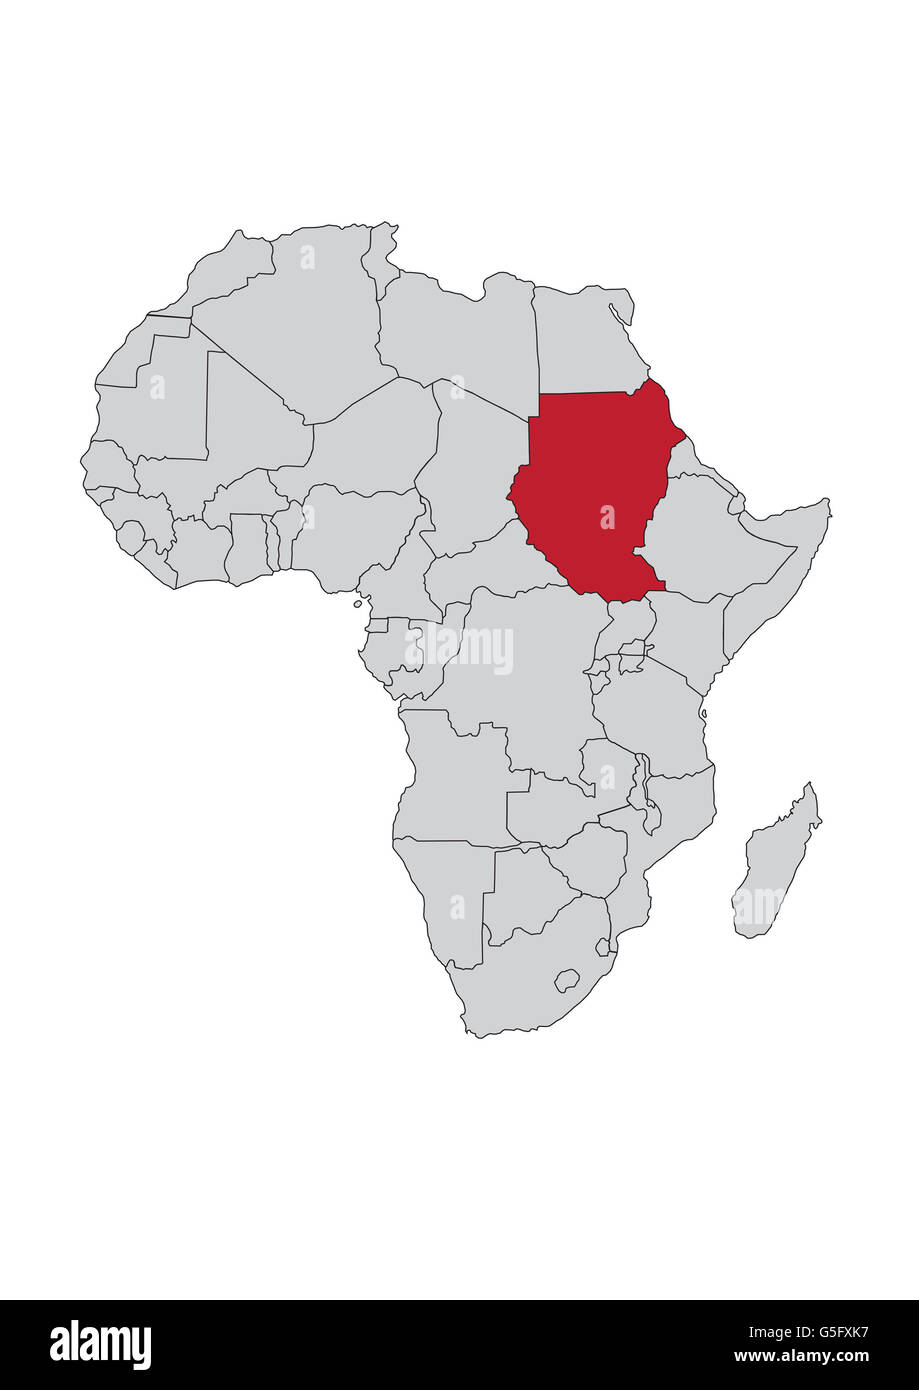 sudan map in africa Map Of Africa Sudan Stock Photo Alamy sudan map in africa